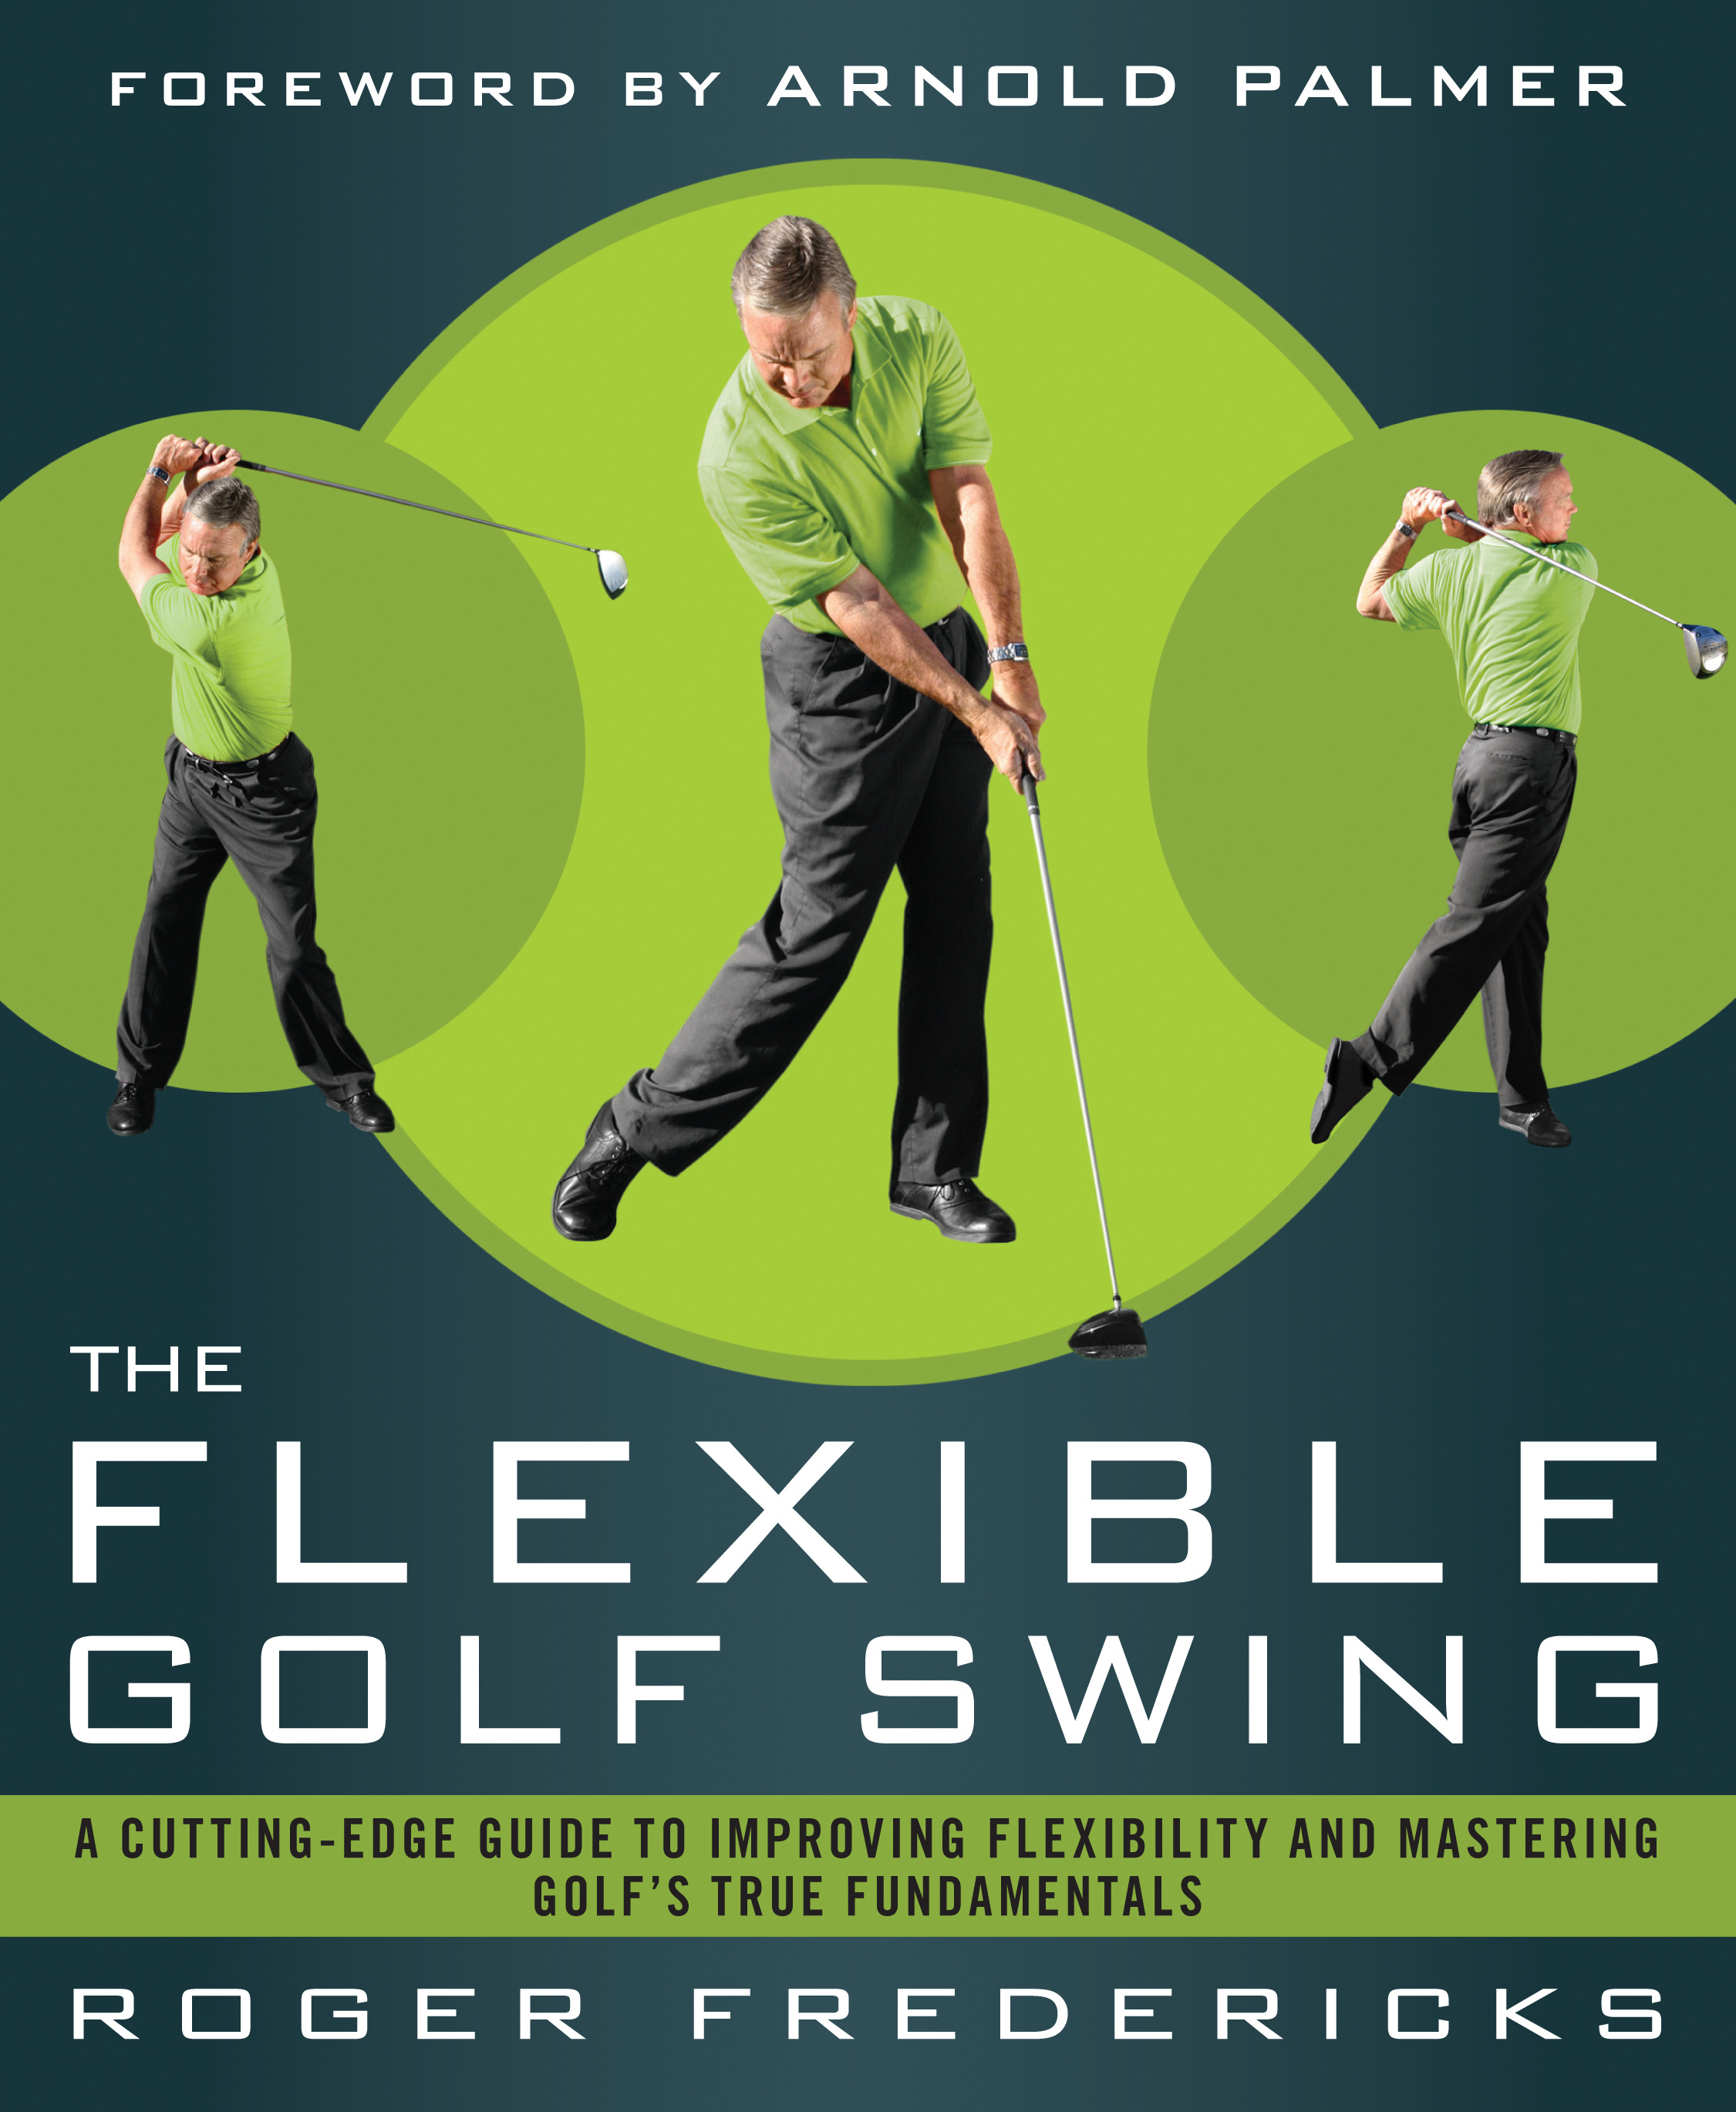 The Flexible Golf Swing by Roger Fredericks ($17.95; fredericksgolf.com): Roger Fredericks helps you discover how your body's limitations are directly affecting your golf swing mechanics, and offers expert advice on how to increase your flexibility to improve both your game and your health.